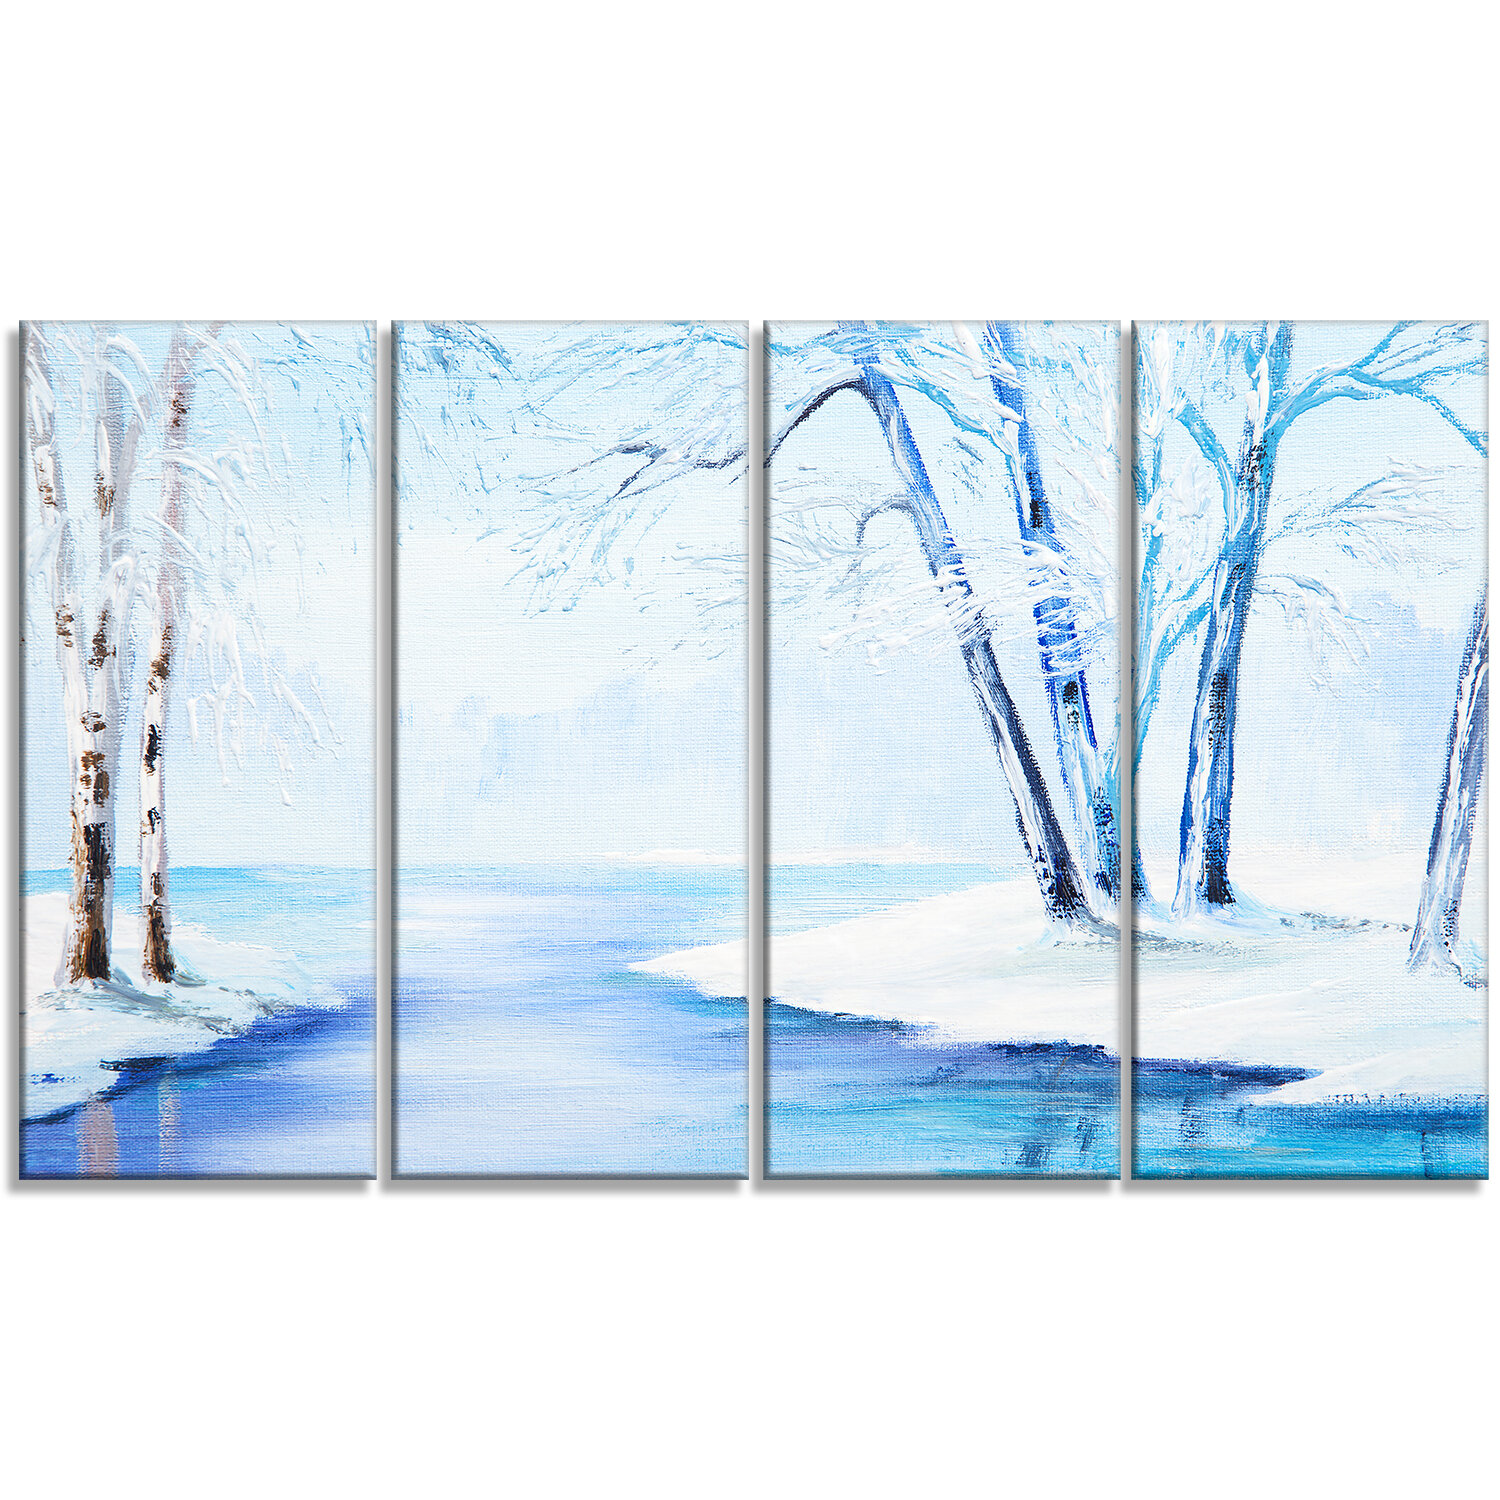 Designart River In Snowy Winter Landscape 4 Piece Painting Print On Wrapped Canvas Set Wayfair